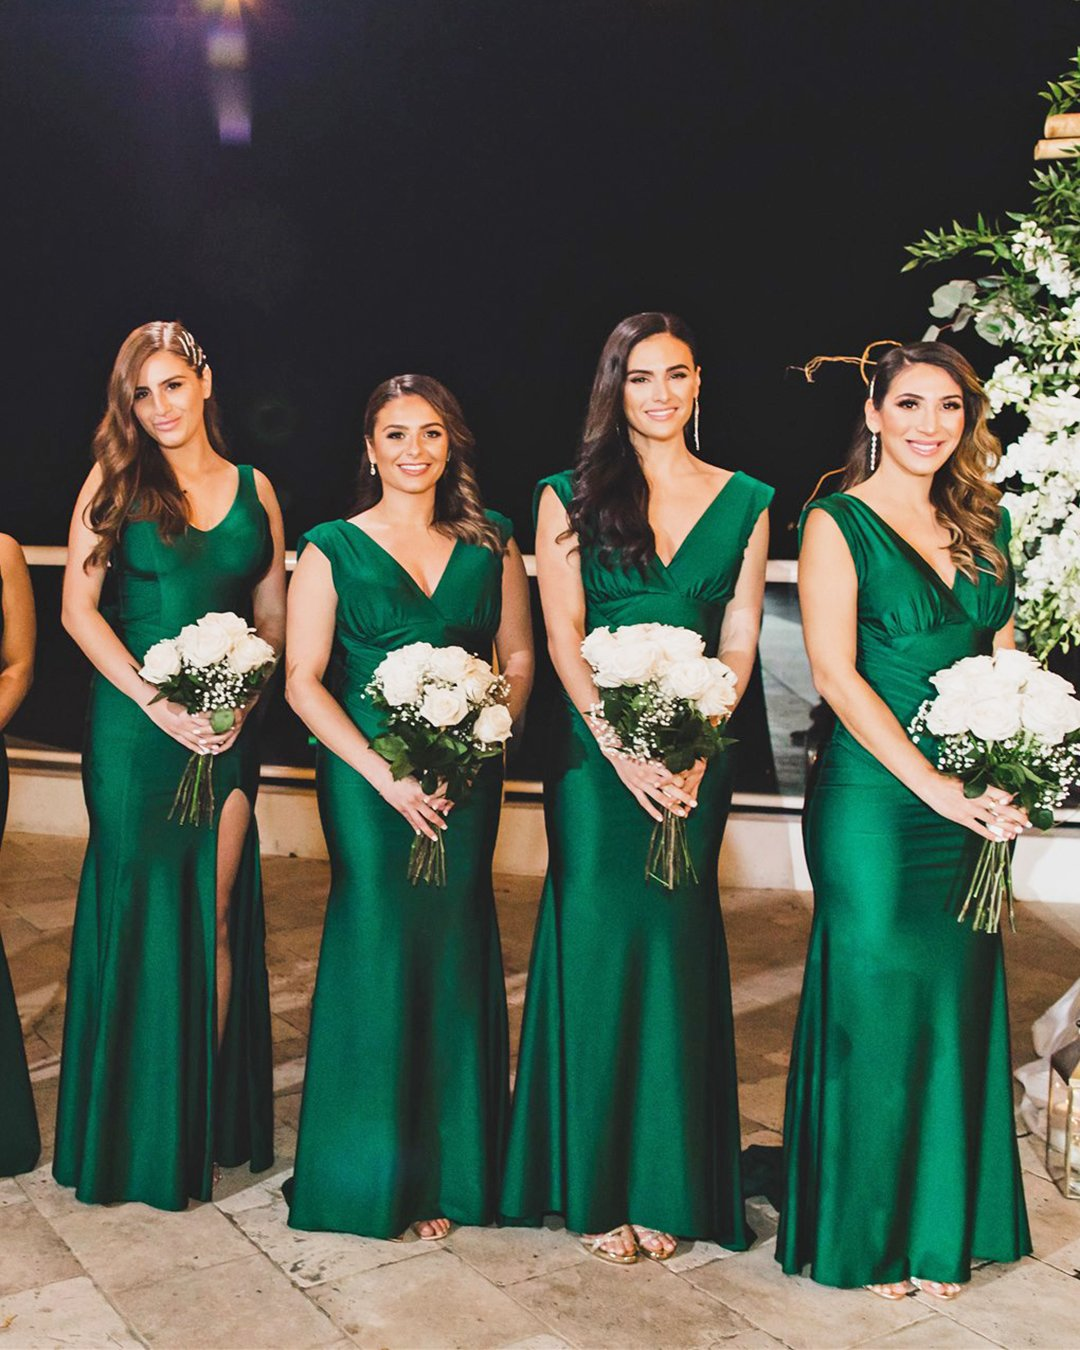 real wedding bridesmaids dresses green long simple v neckline reflections